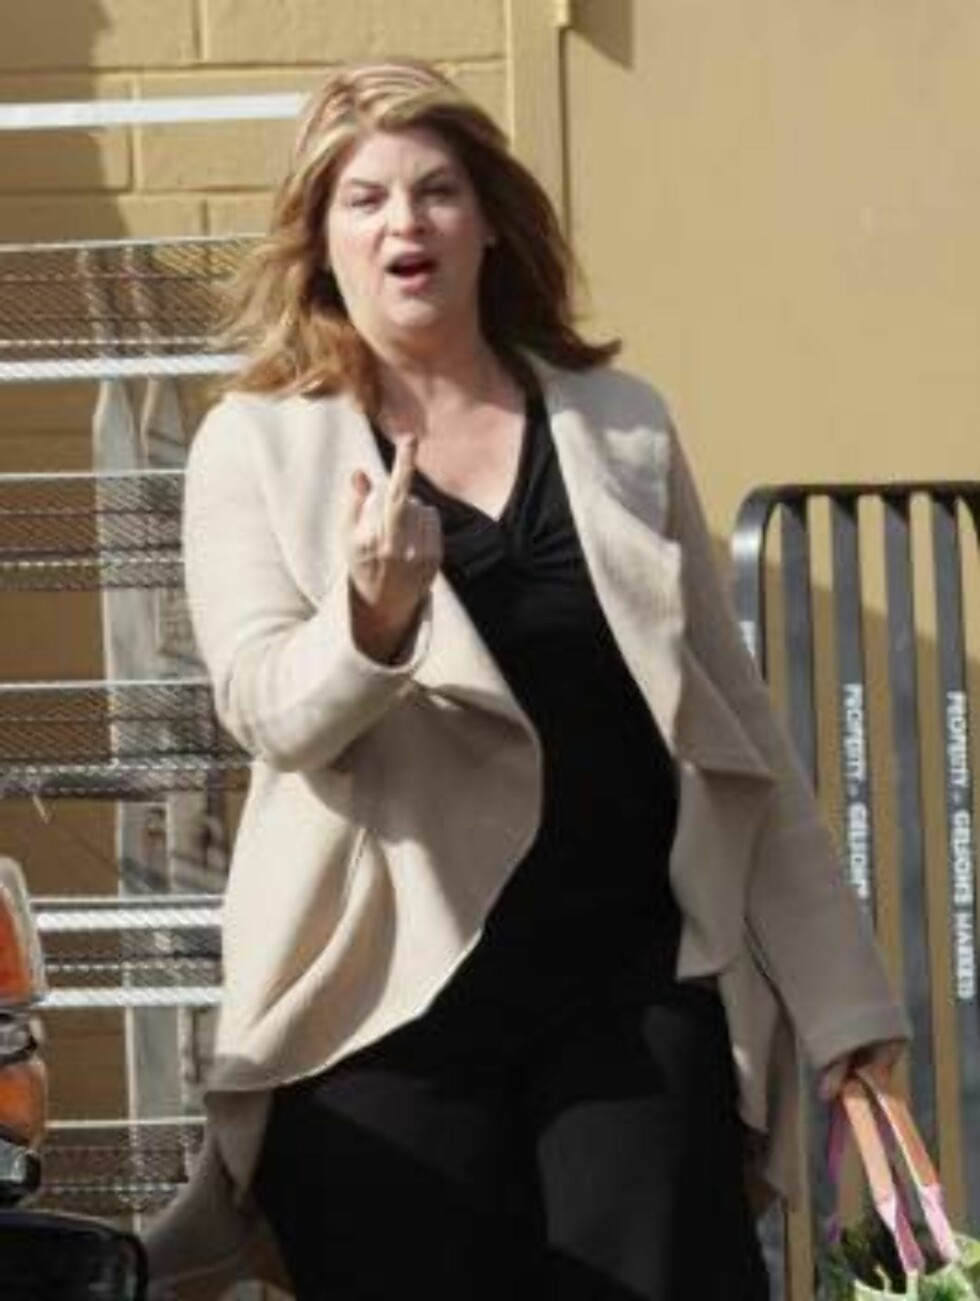 """<strong>Code:</strong>X17XX8-Kristian/Pham, California, USA, 23.11.2004: Actress Kirstie Alley is shopping huge -six carts- for Thanksgiving week-end in Hollywood. The """"Fat Actress"""" star took off her red cape showing she does not have to gain weight for her part. All Ov Foto: All Over Press"""